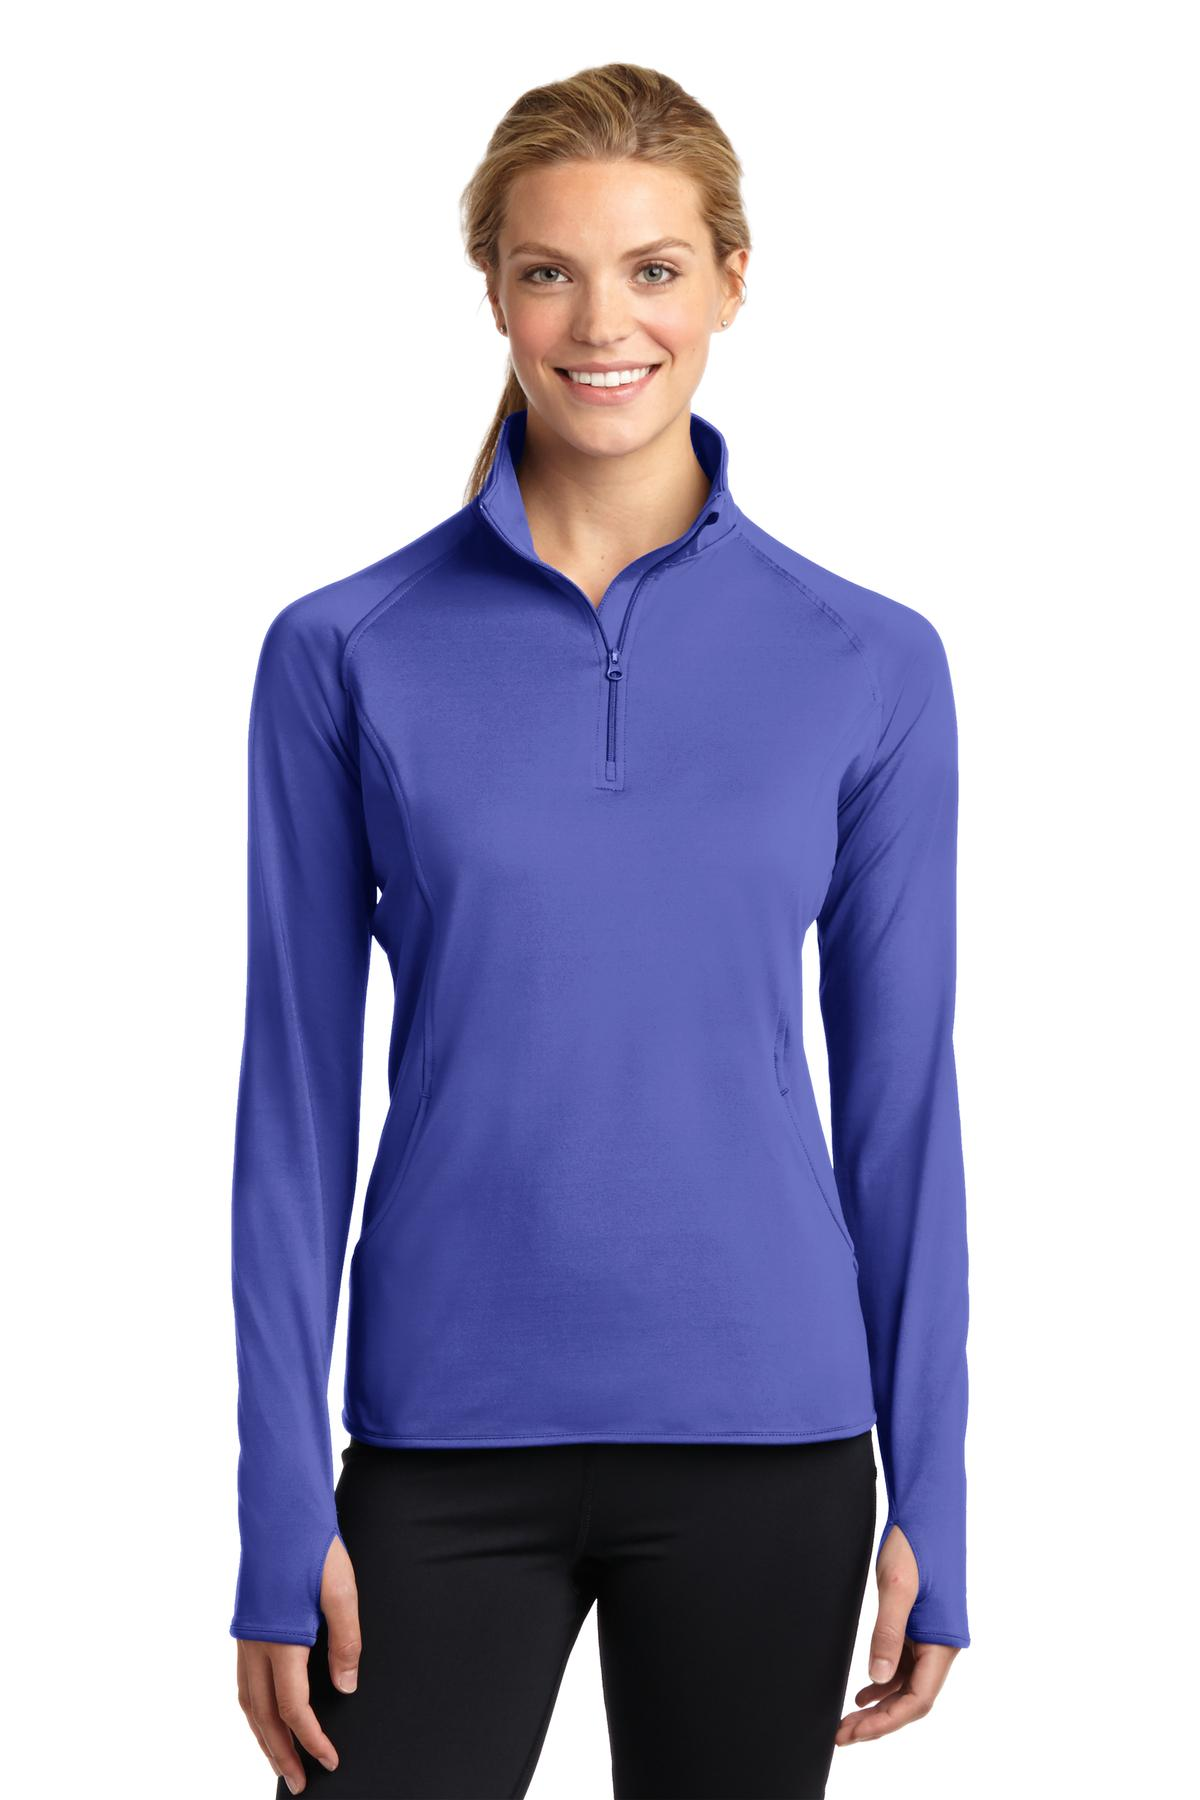 Sport-Tek ®  Ladies Sport-Wick ®  Stretch 1/2-Zip Pullover. LST850 - Iris Purple